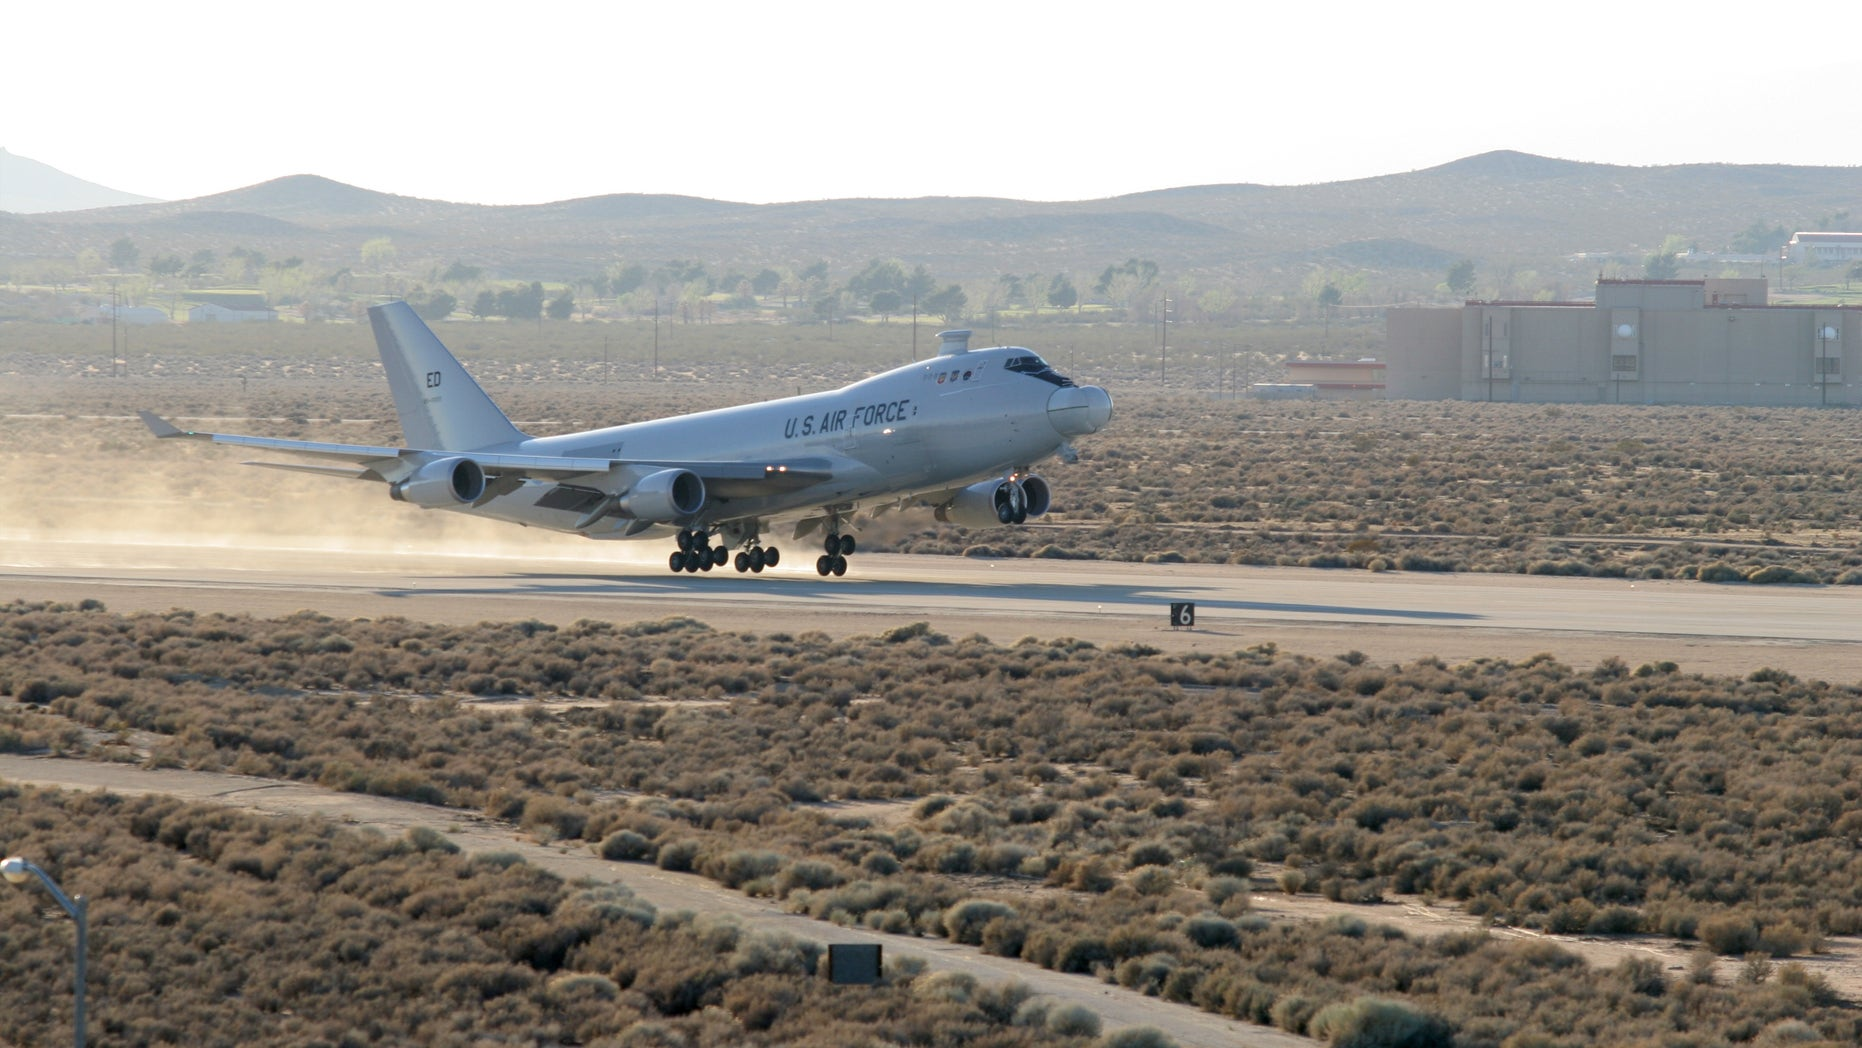 The YAL-1A, a modified Boeing 747-400F known as the Airborne Laser, takes off from Edwards Air Force Base, Calif., on March 15, 2007 for a five-hour test mission that would see the aircraft's Target Illuminator Laser fired in-flight for the first time. (Photo by Kellie Masters)